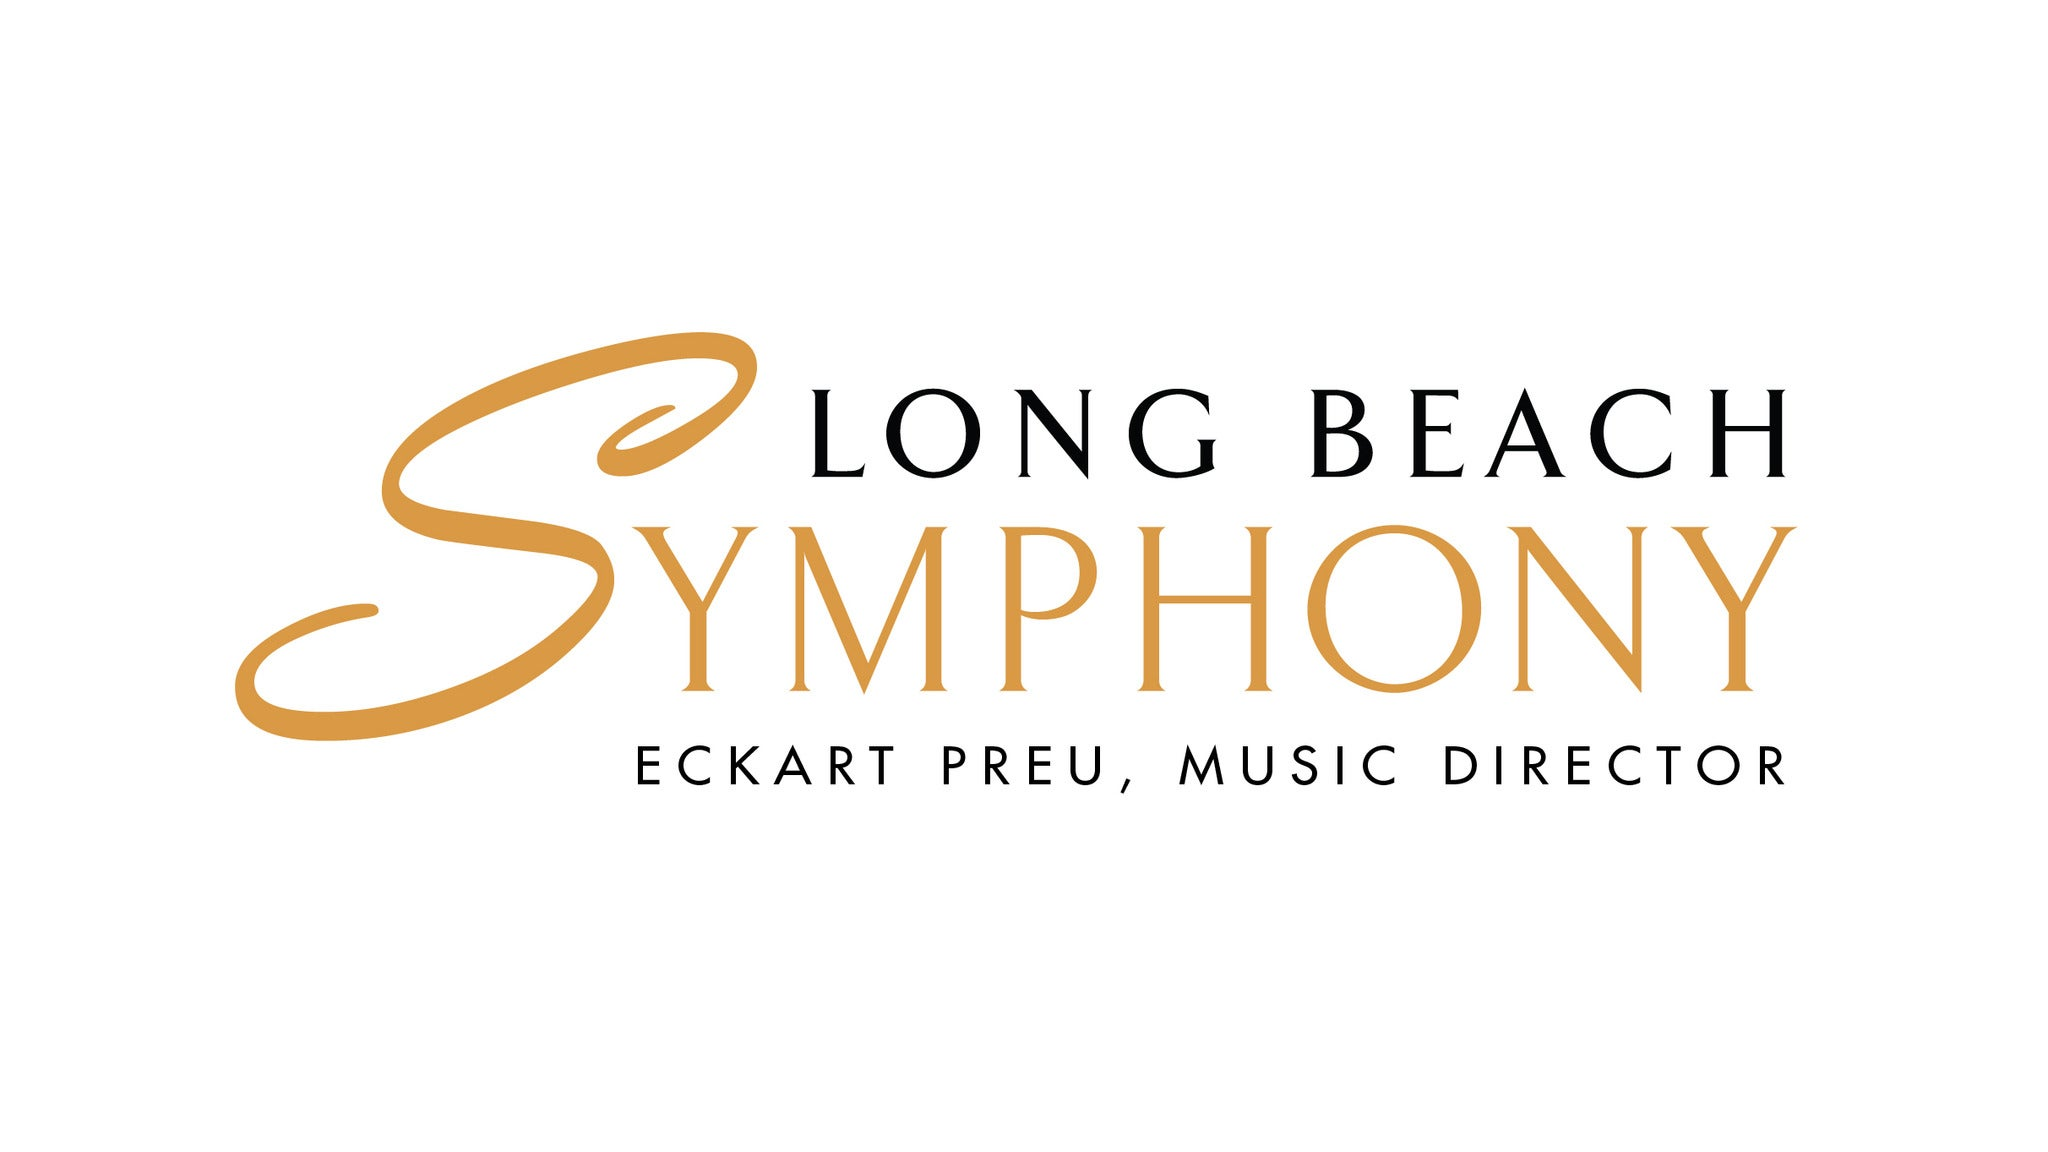 Long Beach Symphony